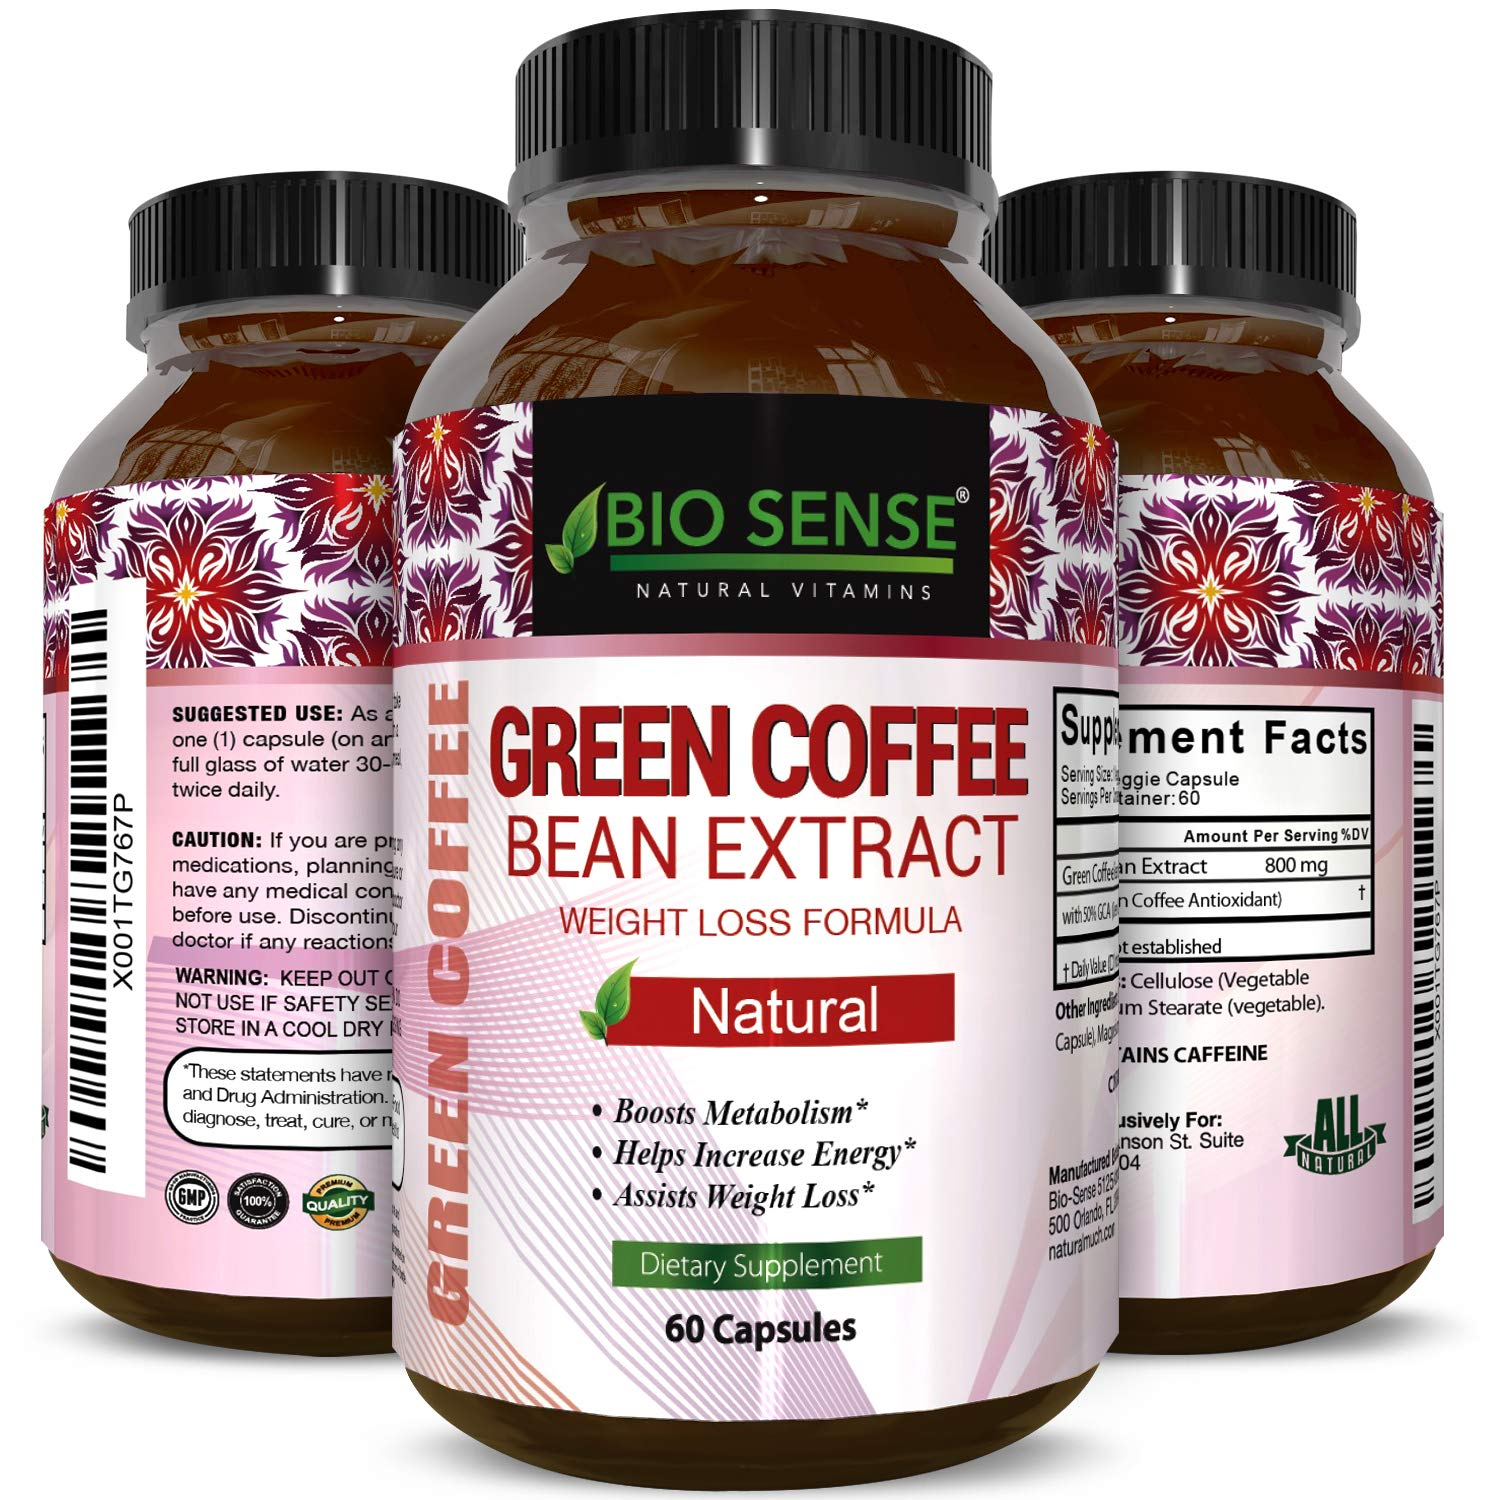 Pure Green Coffee Bean Extract and Standardized to 50 Chlorogenic Acid with Weight Loss Supplement for Men and Women, Burns Both Fat and Sugar with High Grade Natural Ingredients